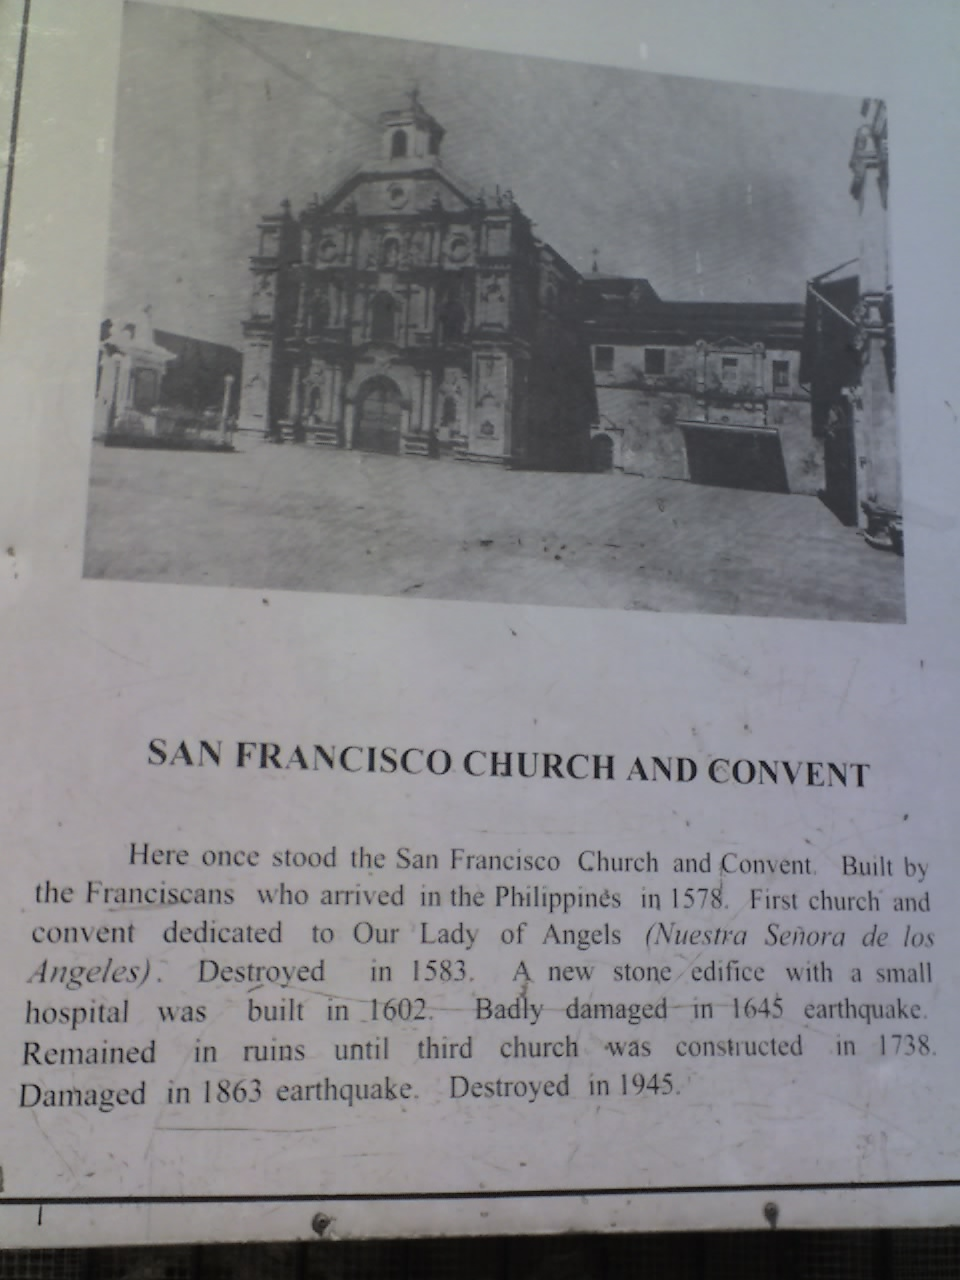 SAN FRANCISCO CHURCH AND CONVENT